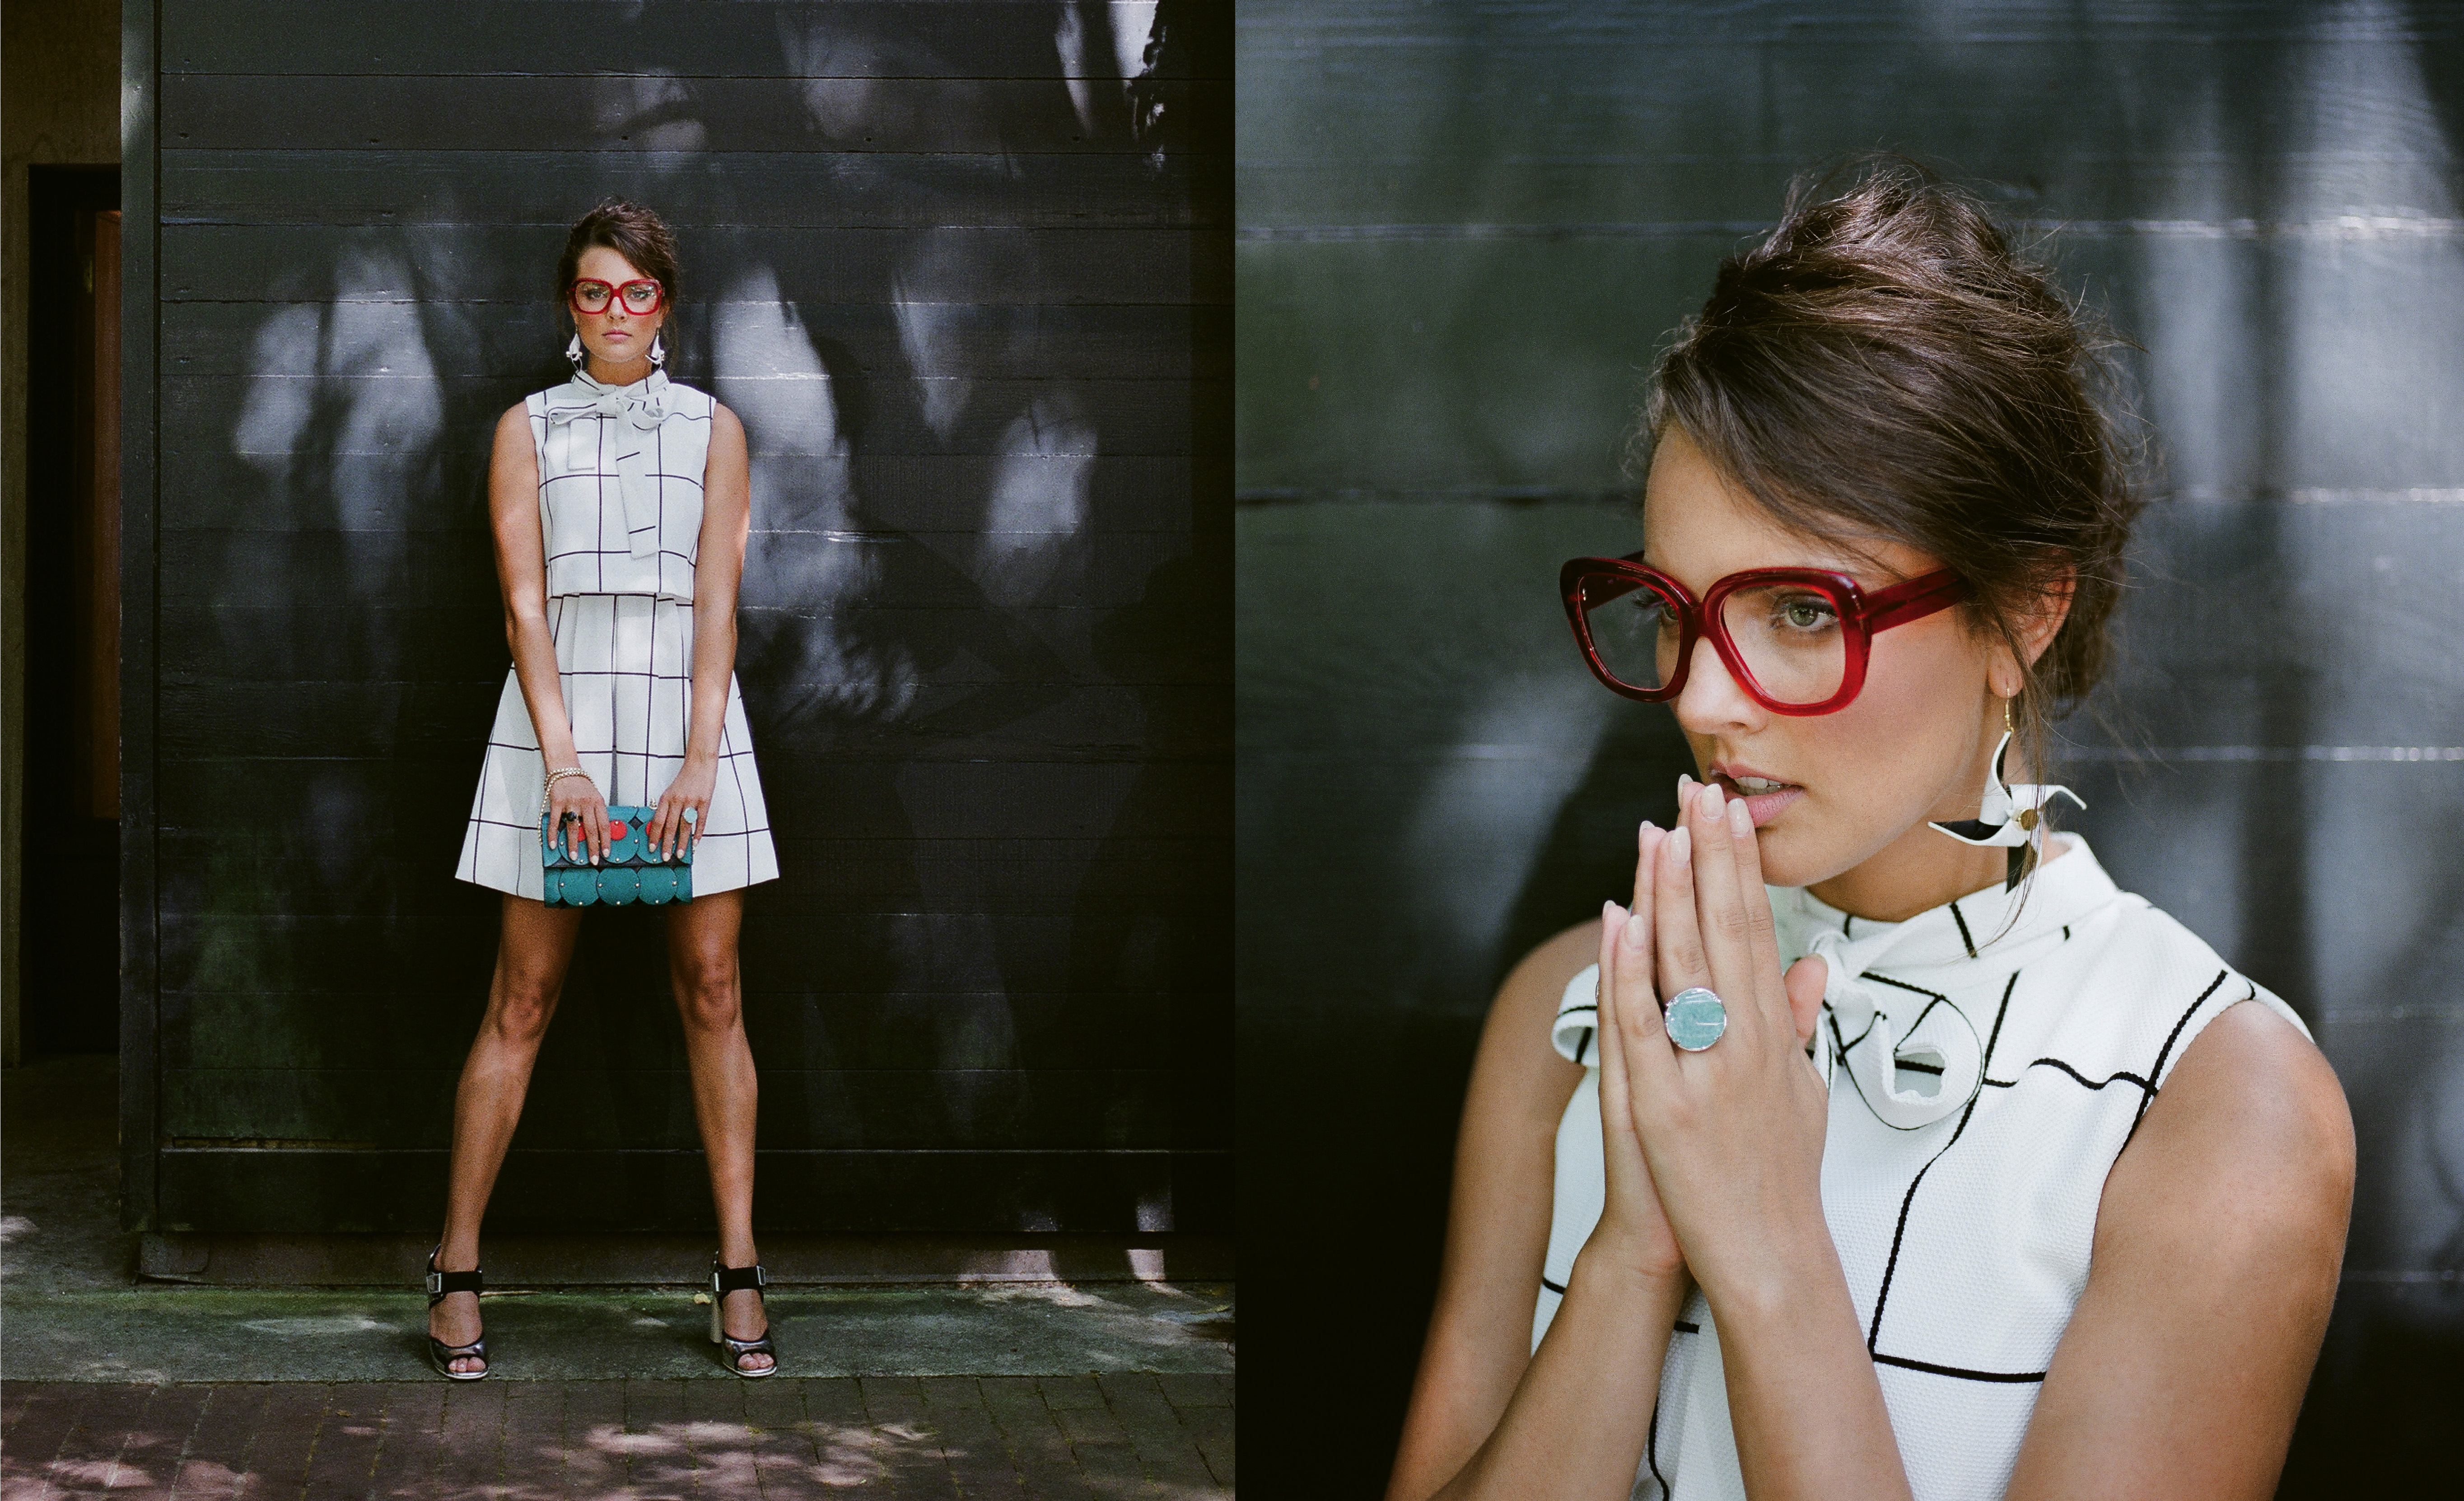 """Square Space: Gracia belted windowpane print dress, $68 at Très Carmen; Ellia Wang turquoise pillow clutch, $594 at Maris Dehart; sterling-silver ring with black onyx, $60 at Gold Creations; and Marni silver block heel, $970 at Hampden Clothing. (Opposite) """"Caroline"""" glasses in """"cherry red,"""" $465 at Friedrich's Optik; Ellia Wang Geometry Collection pinwheel earrings, $78 at Maris Dehart; and 14K white-gold ring with amazonite crystal and diamonds, $1,575 at Gold Creations"""